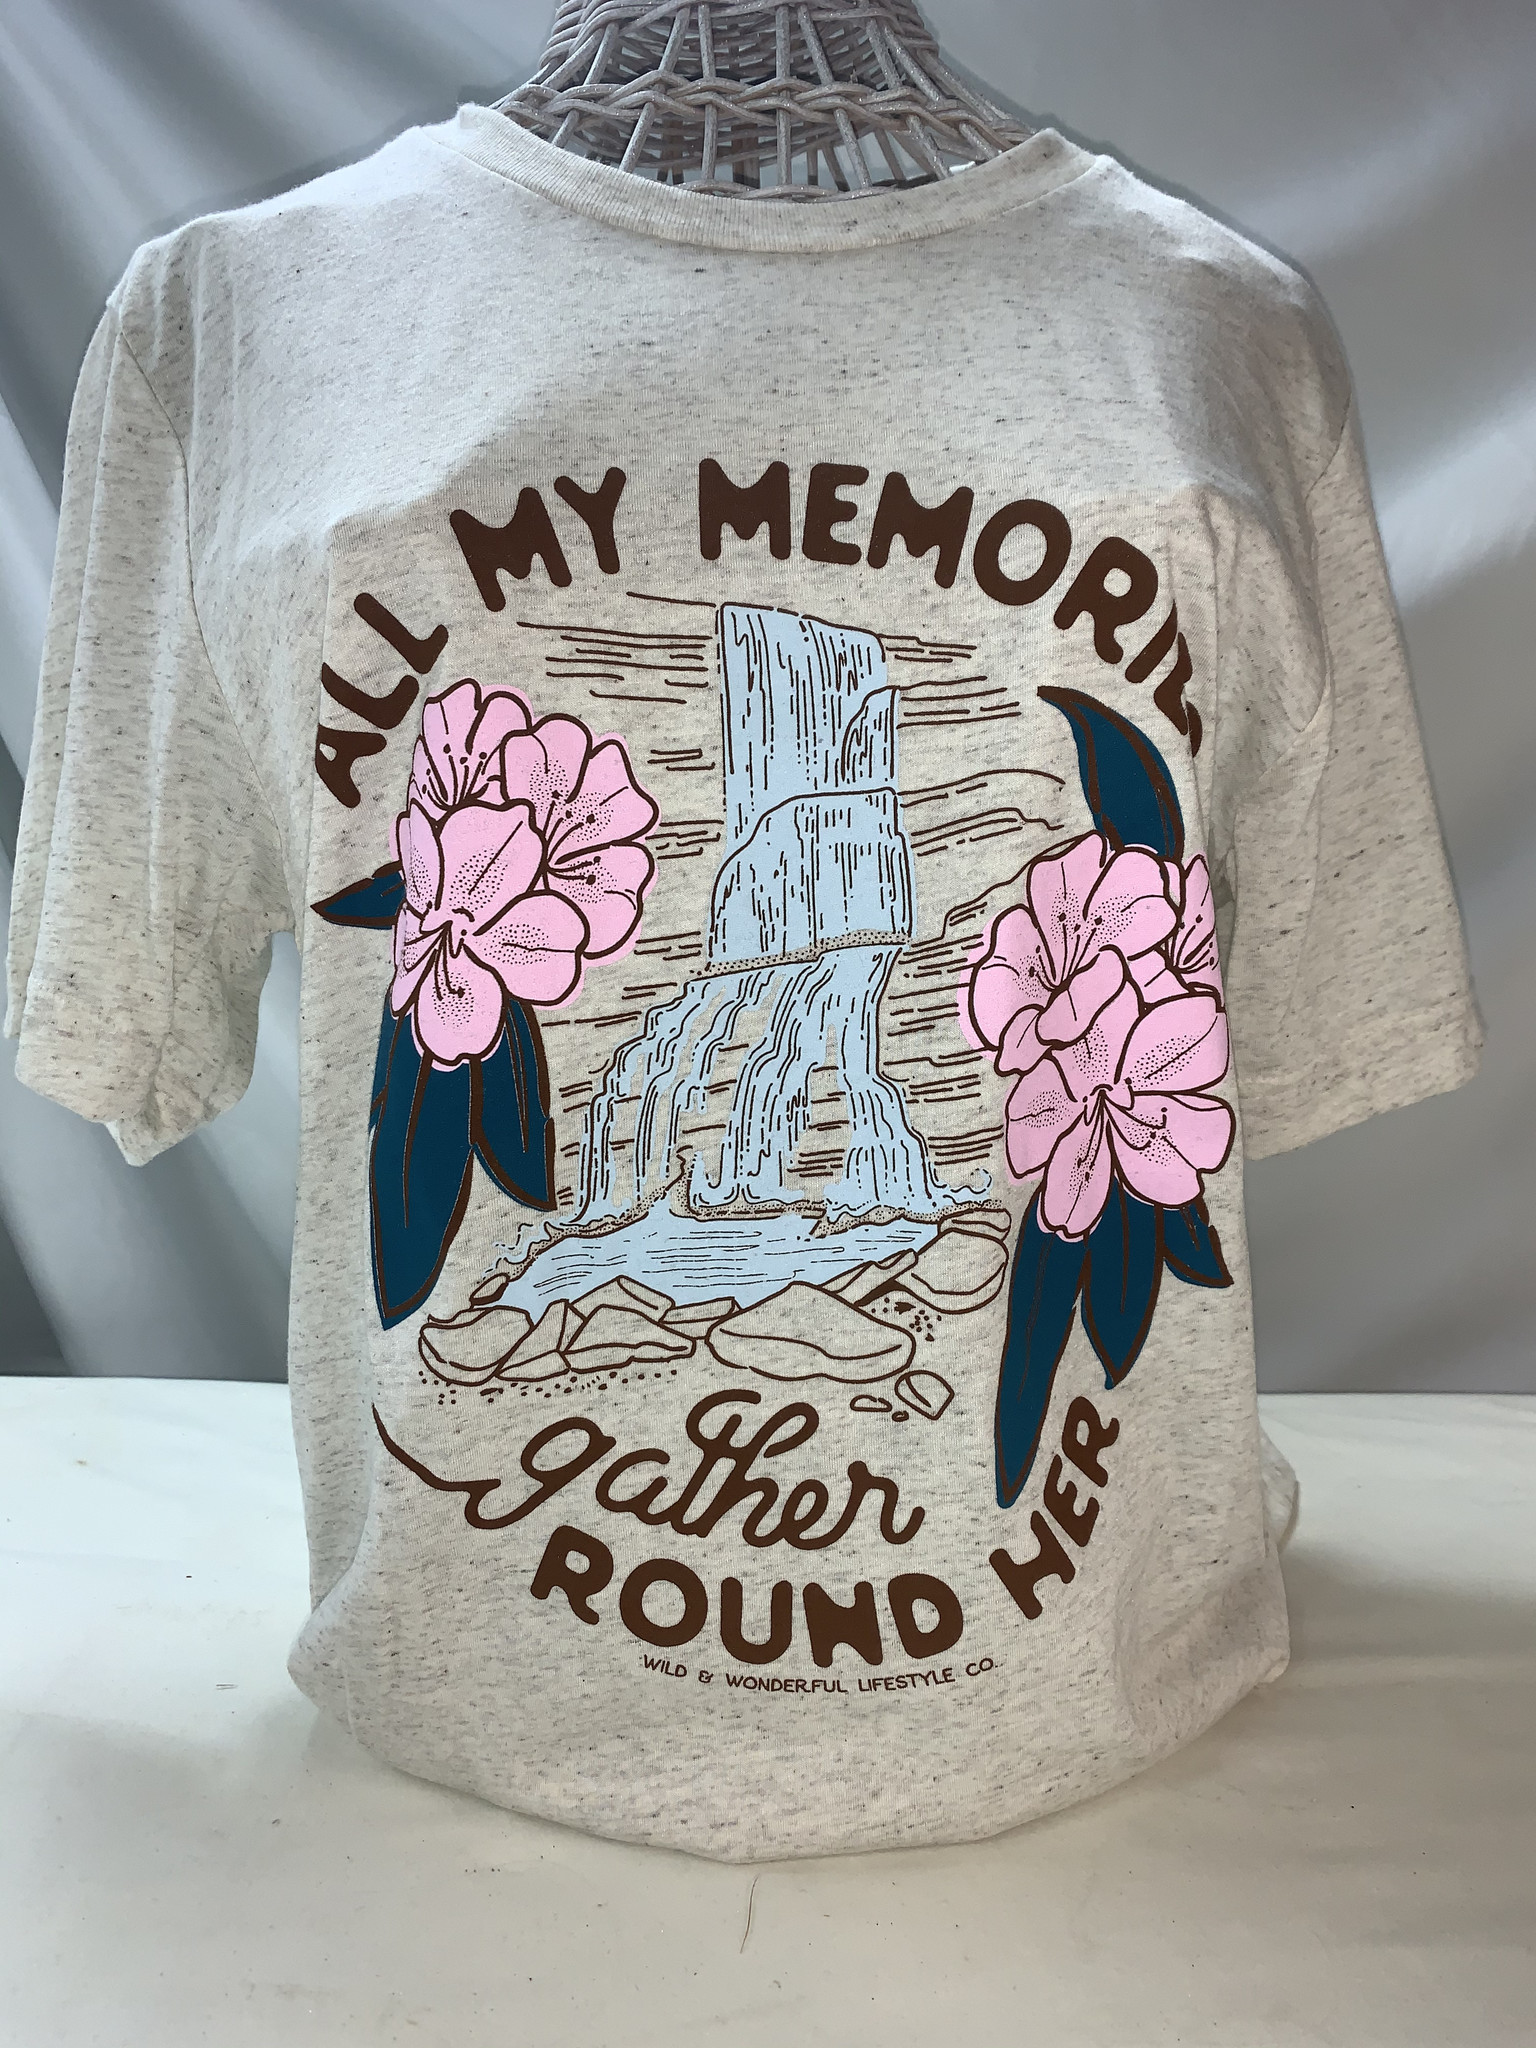 Wild & Wonderful Lifestyle Company All My Memories Tee Md